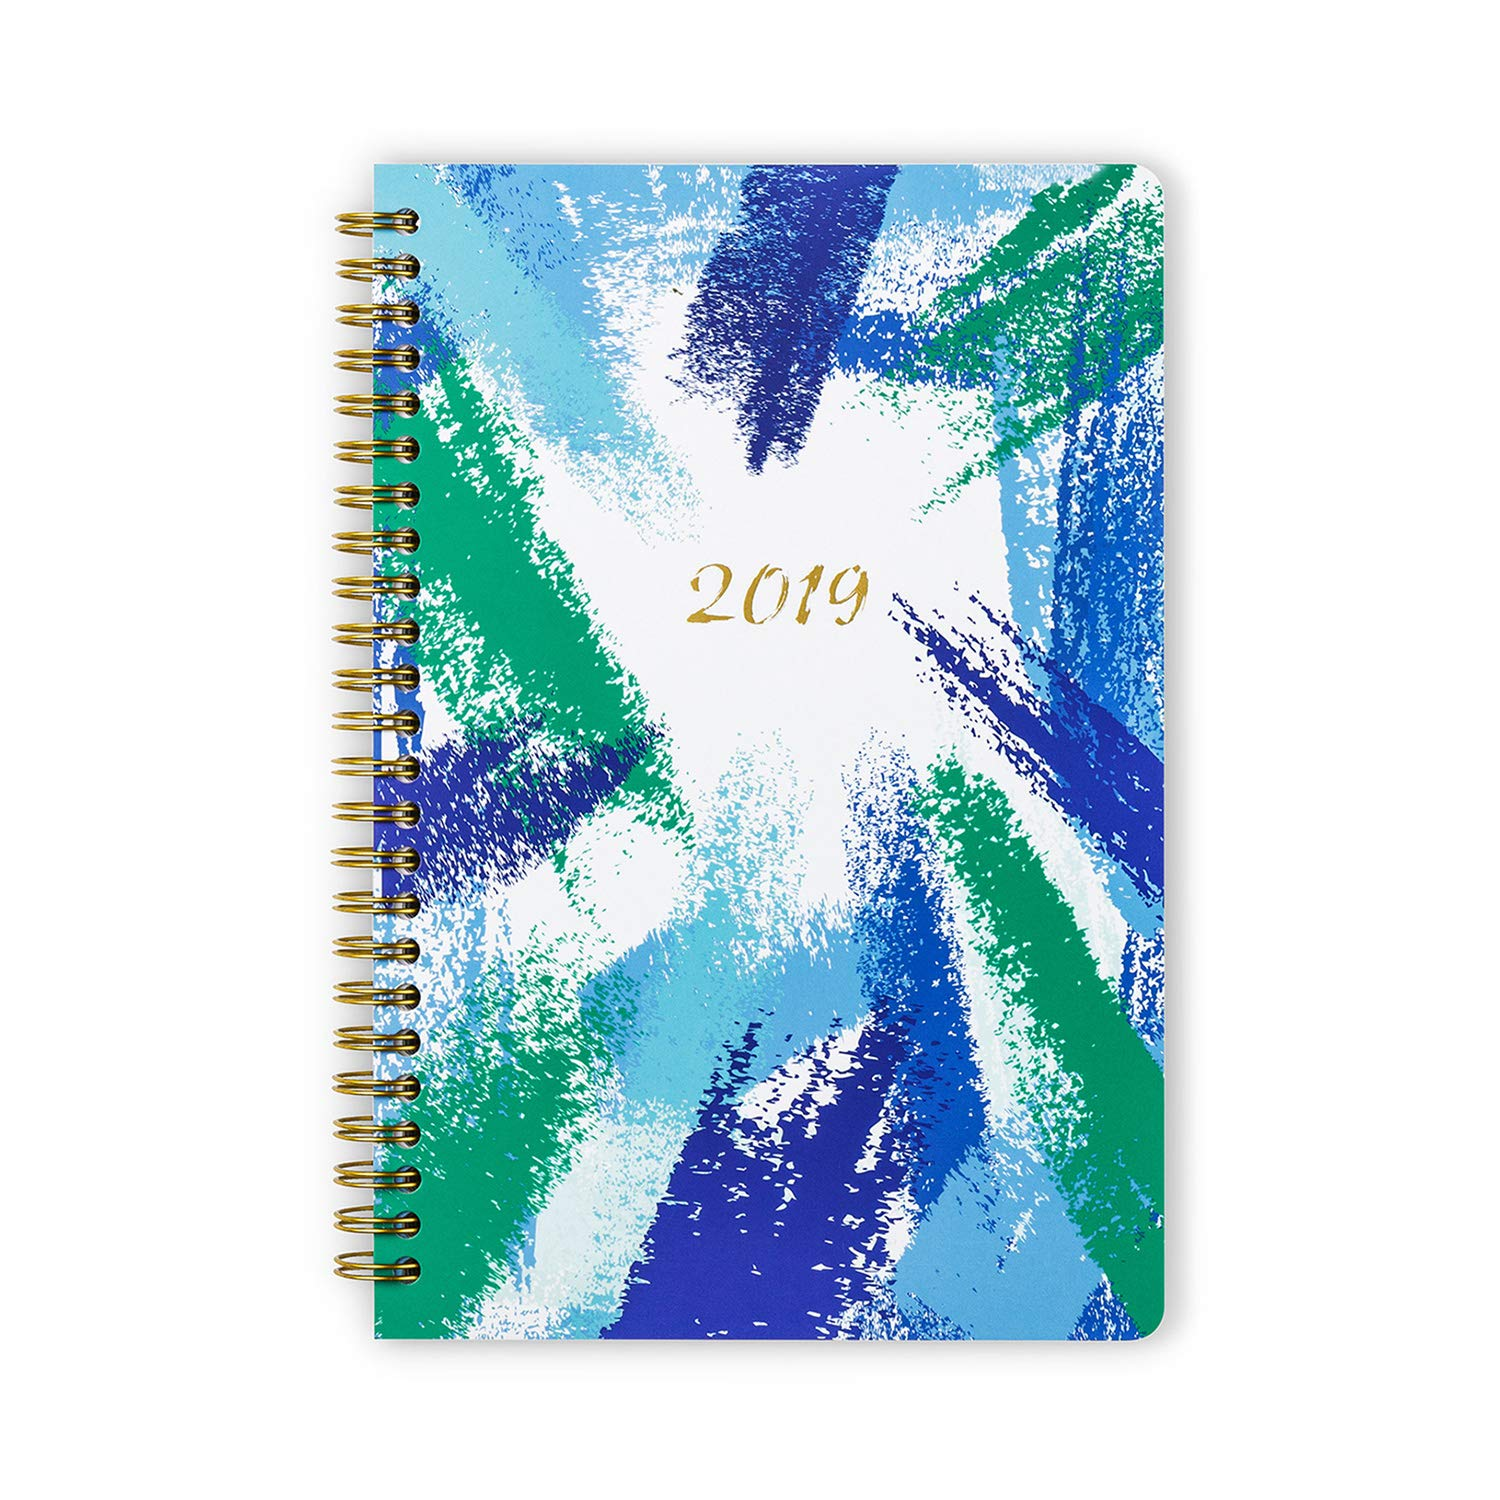 Cabbrix 2019-2020 Hardcover Planner Academic Year Daily Weekly & Monthly Small Planners, Feather Pattern, 5.5 x 8 Inches (Autumn)